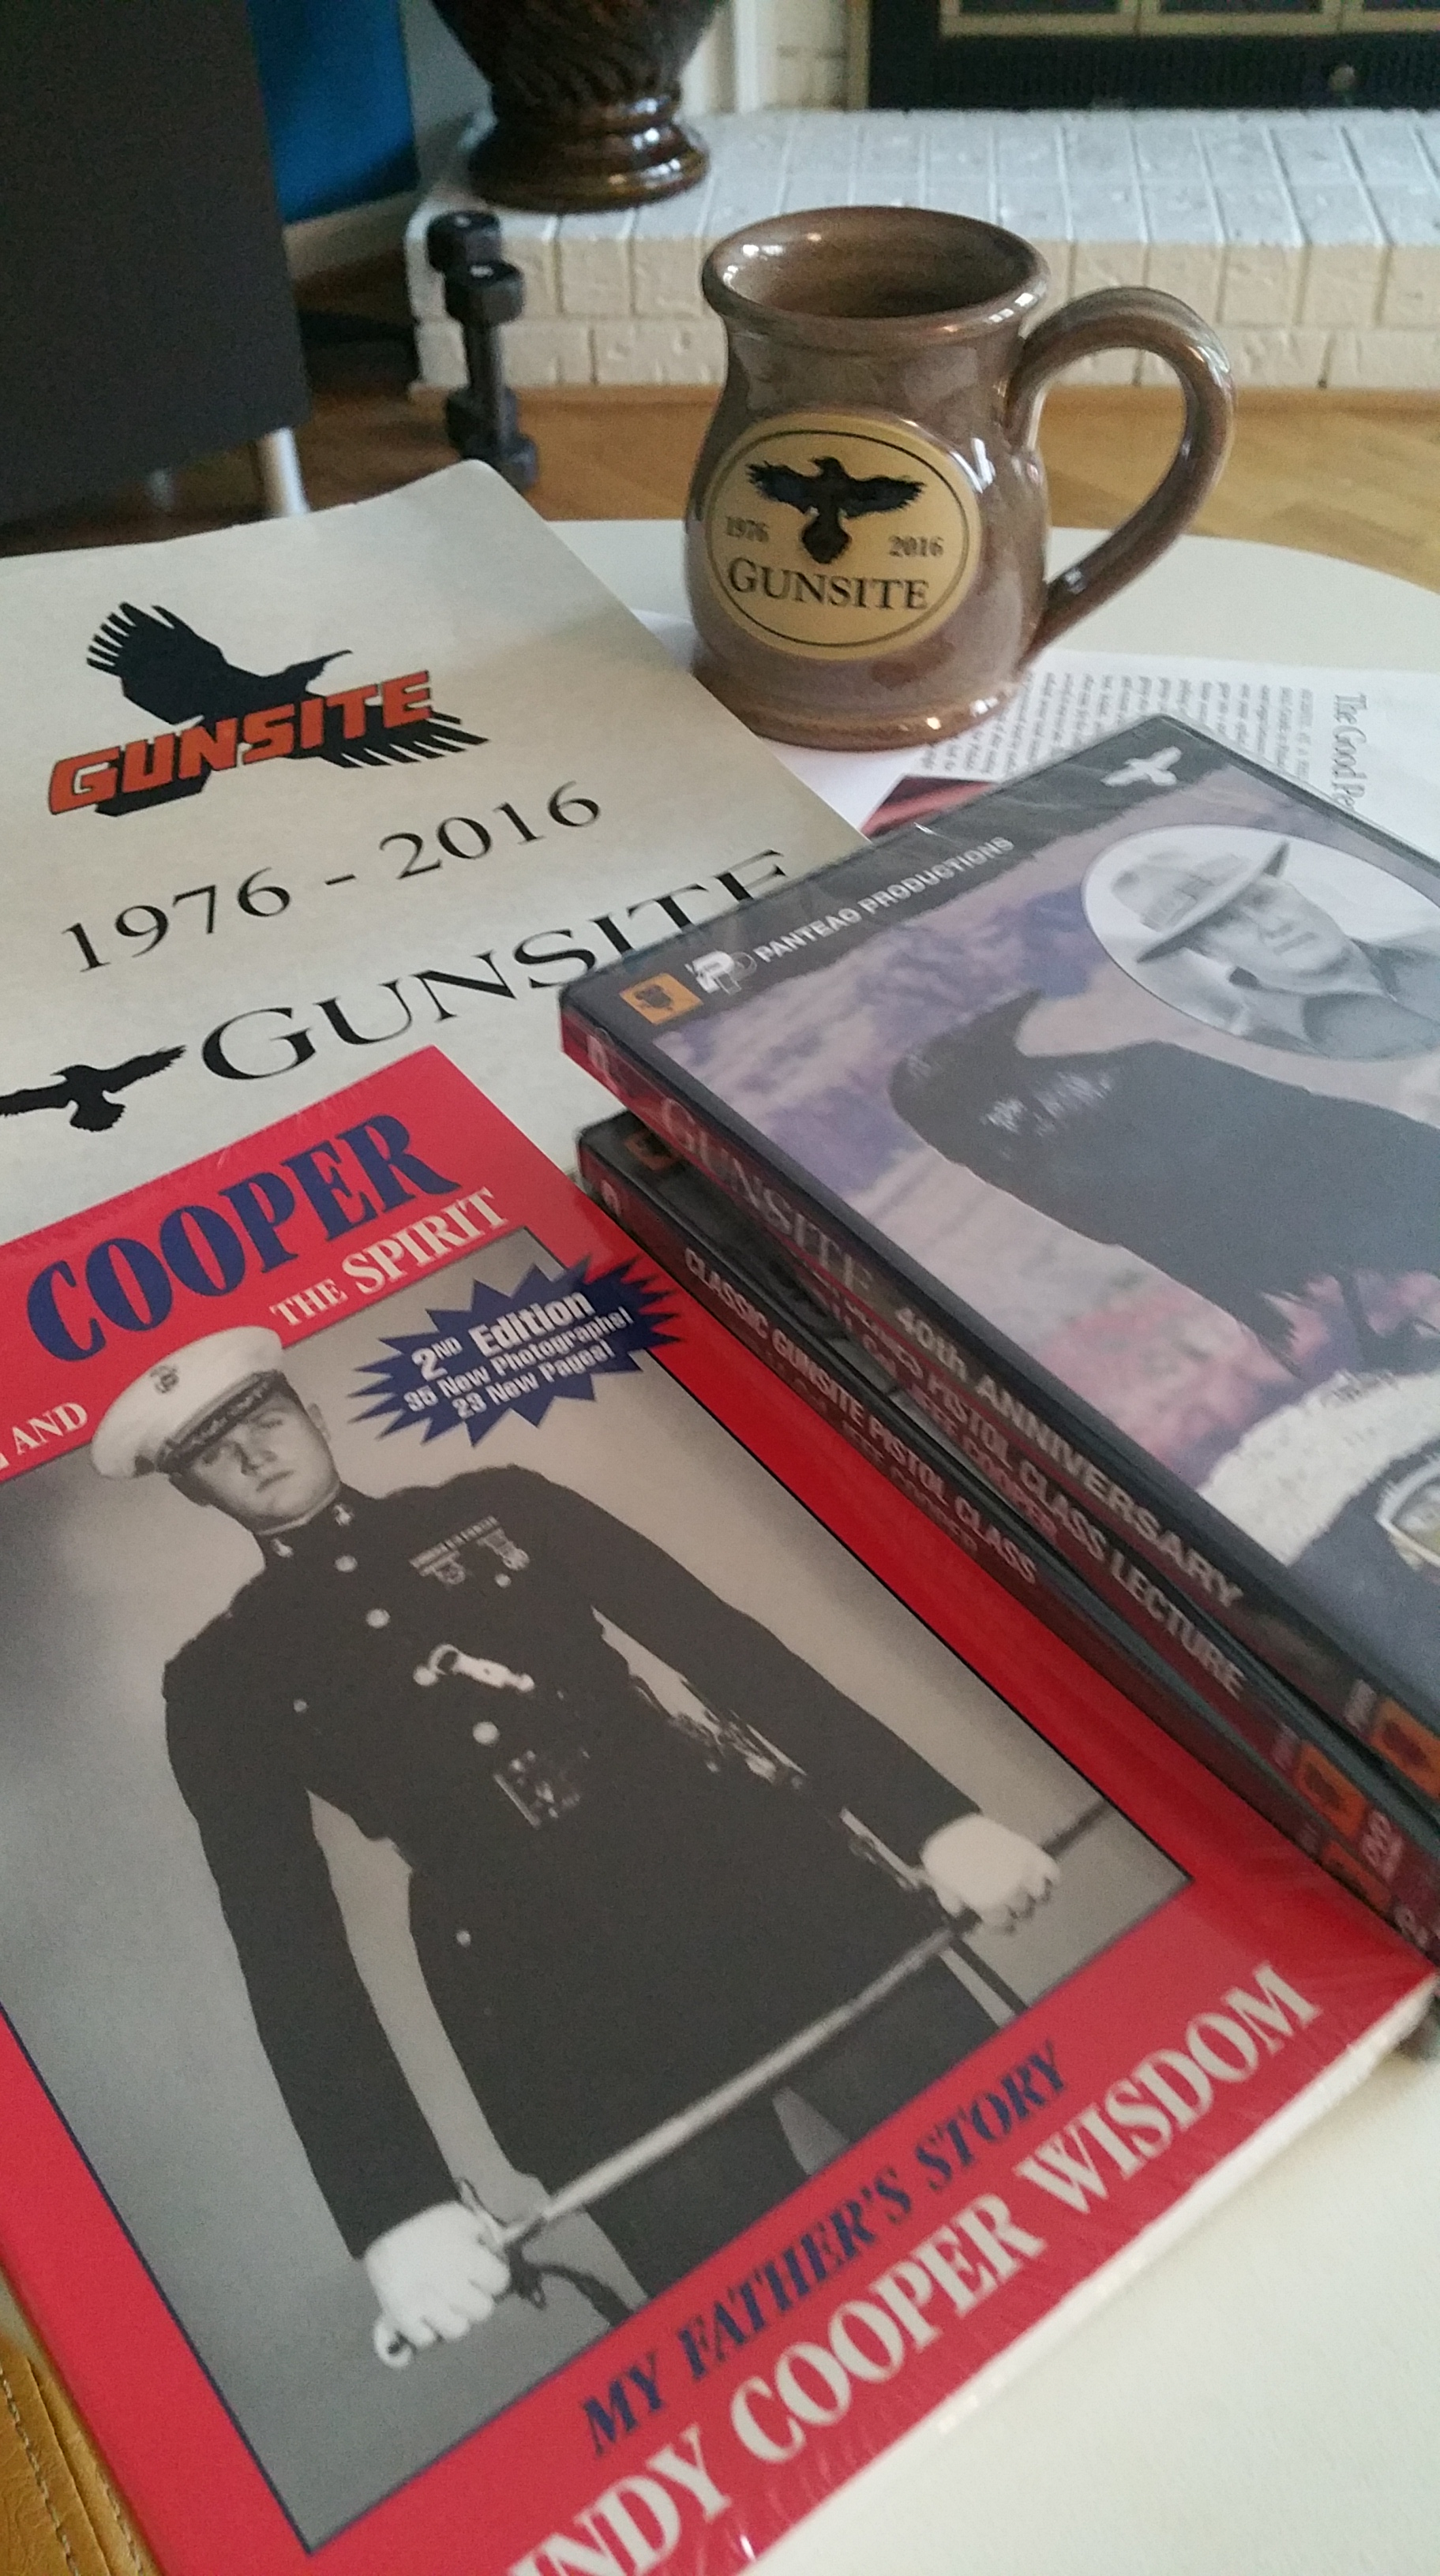 Col. Jeff Cooper, Life Insurance Salesman